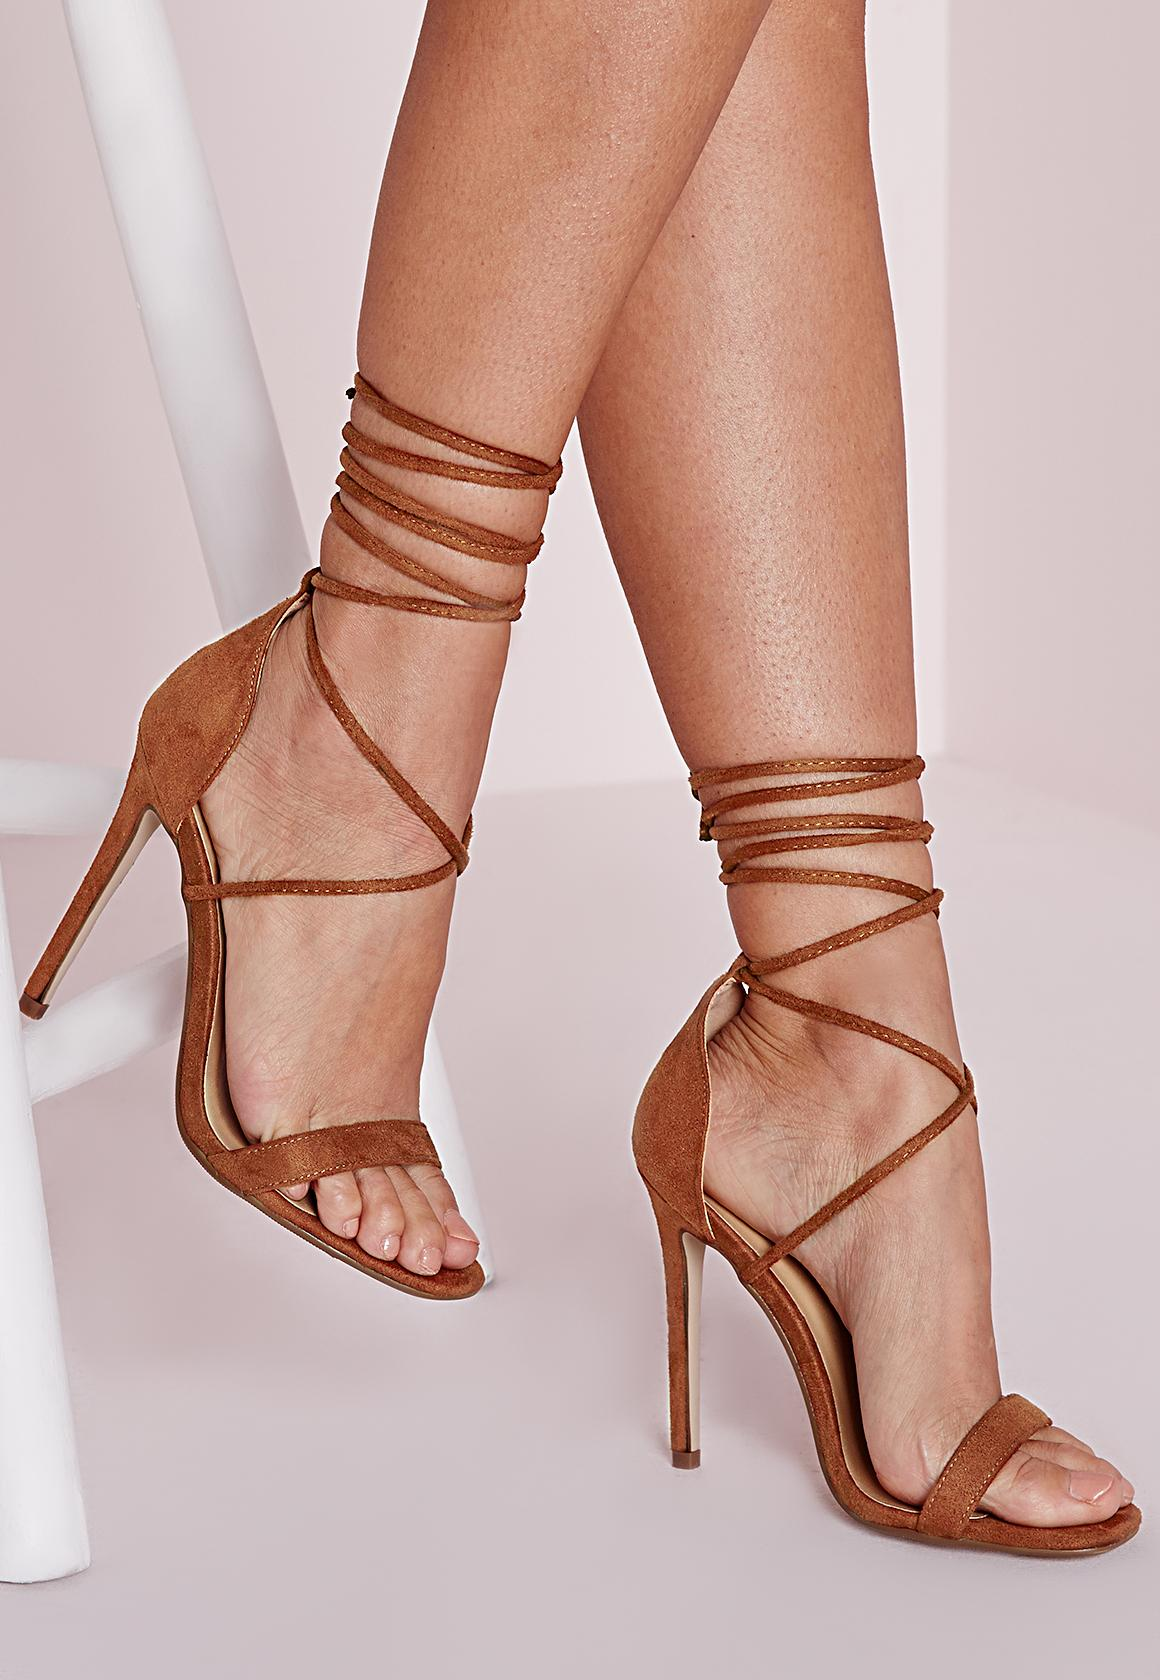 Lace Up Barely There Heeled Sandals Tan - Shoes - High Heels ...